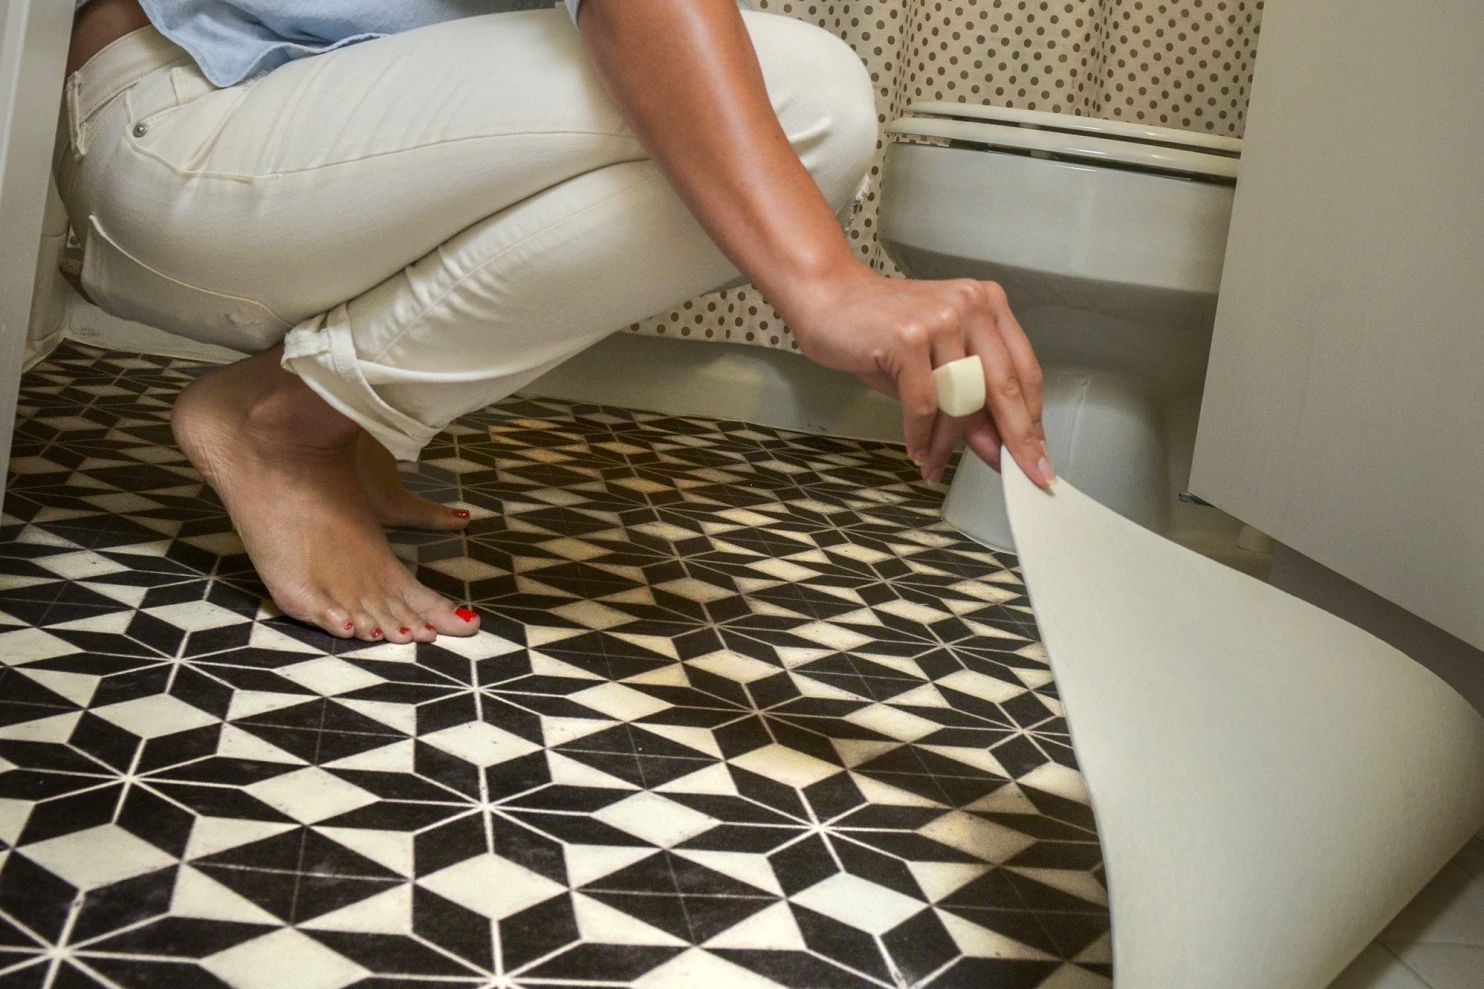 Vinyl flooring picture gallery why resilient vinyl flooring could be right for you dailygadgetfo Images